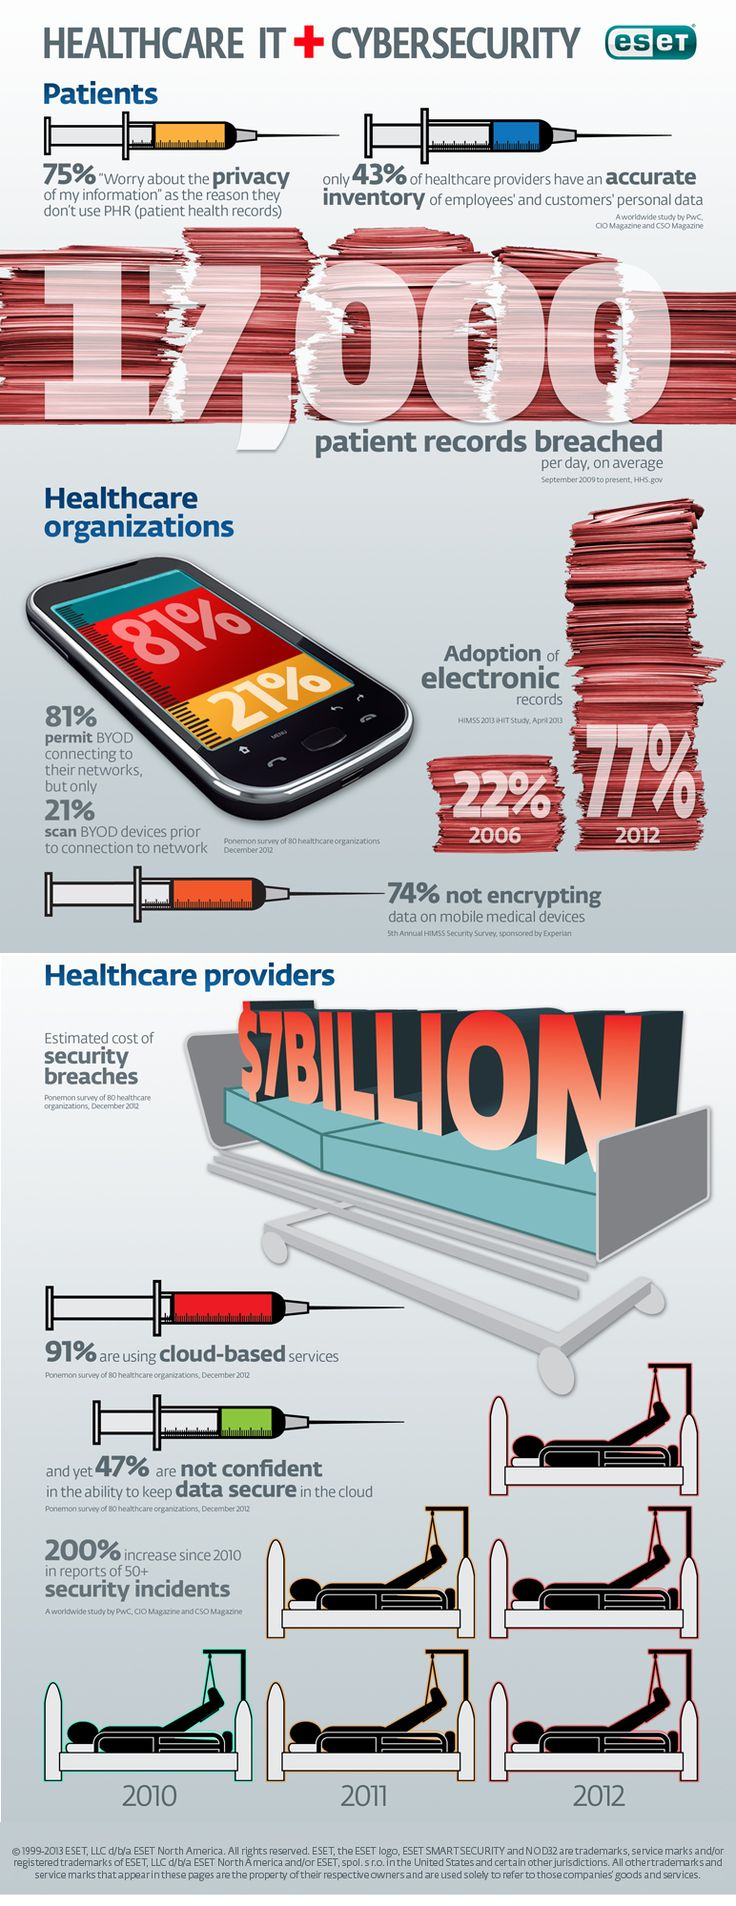 Infographic: Healthcare IT Cybersecurity | New Visions Healthcare Blog - #infographic #cybersecurity #healthcare #healthinsurance - www.healthcoverageally.com